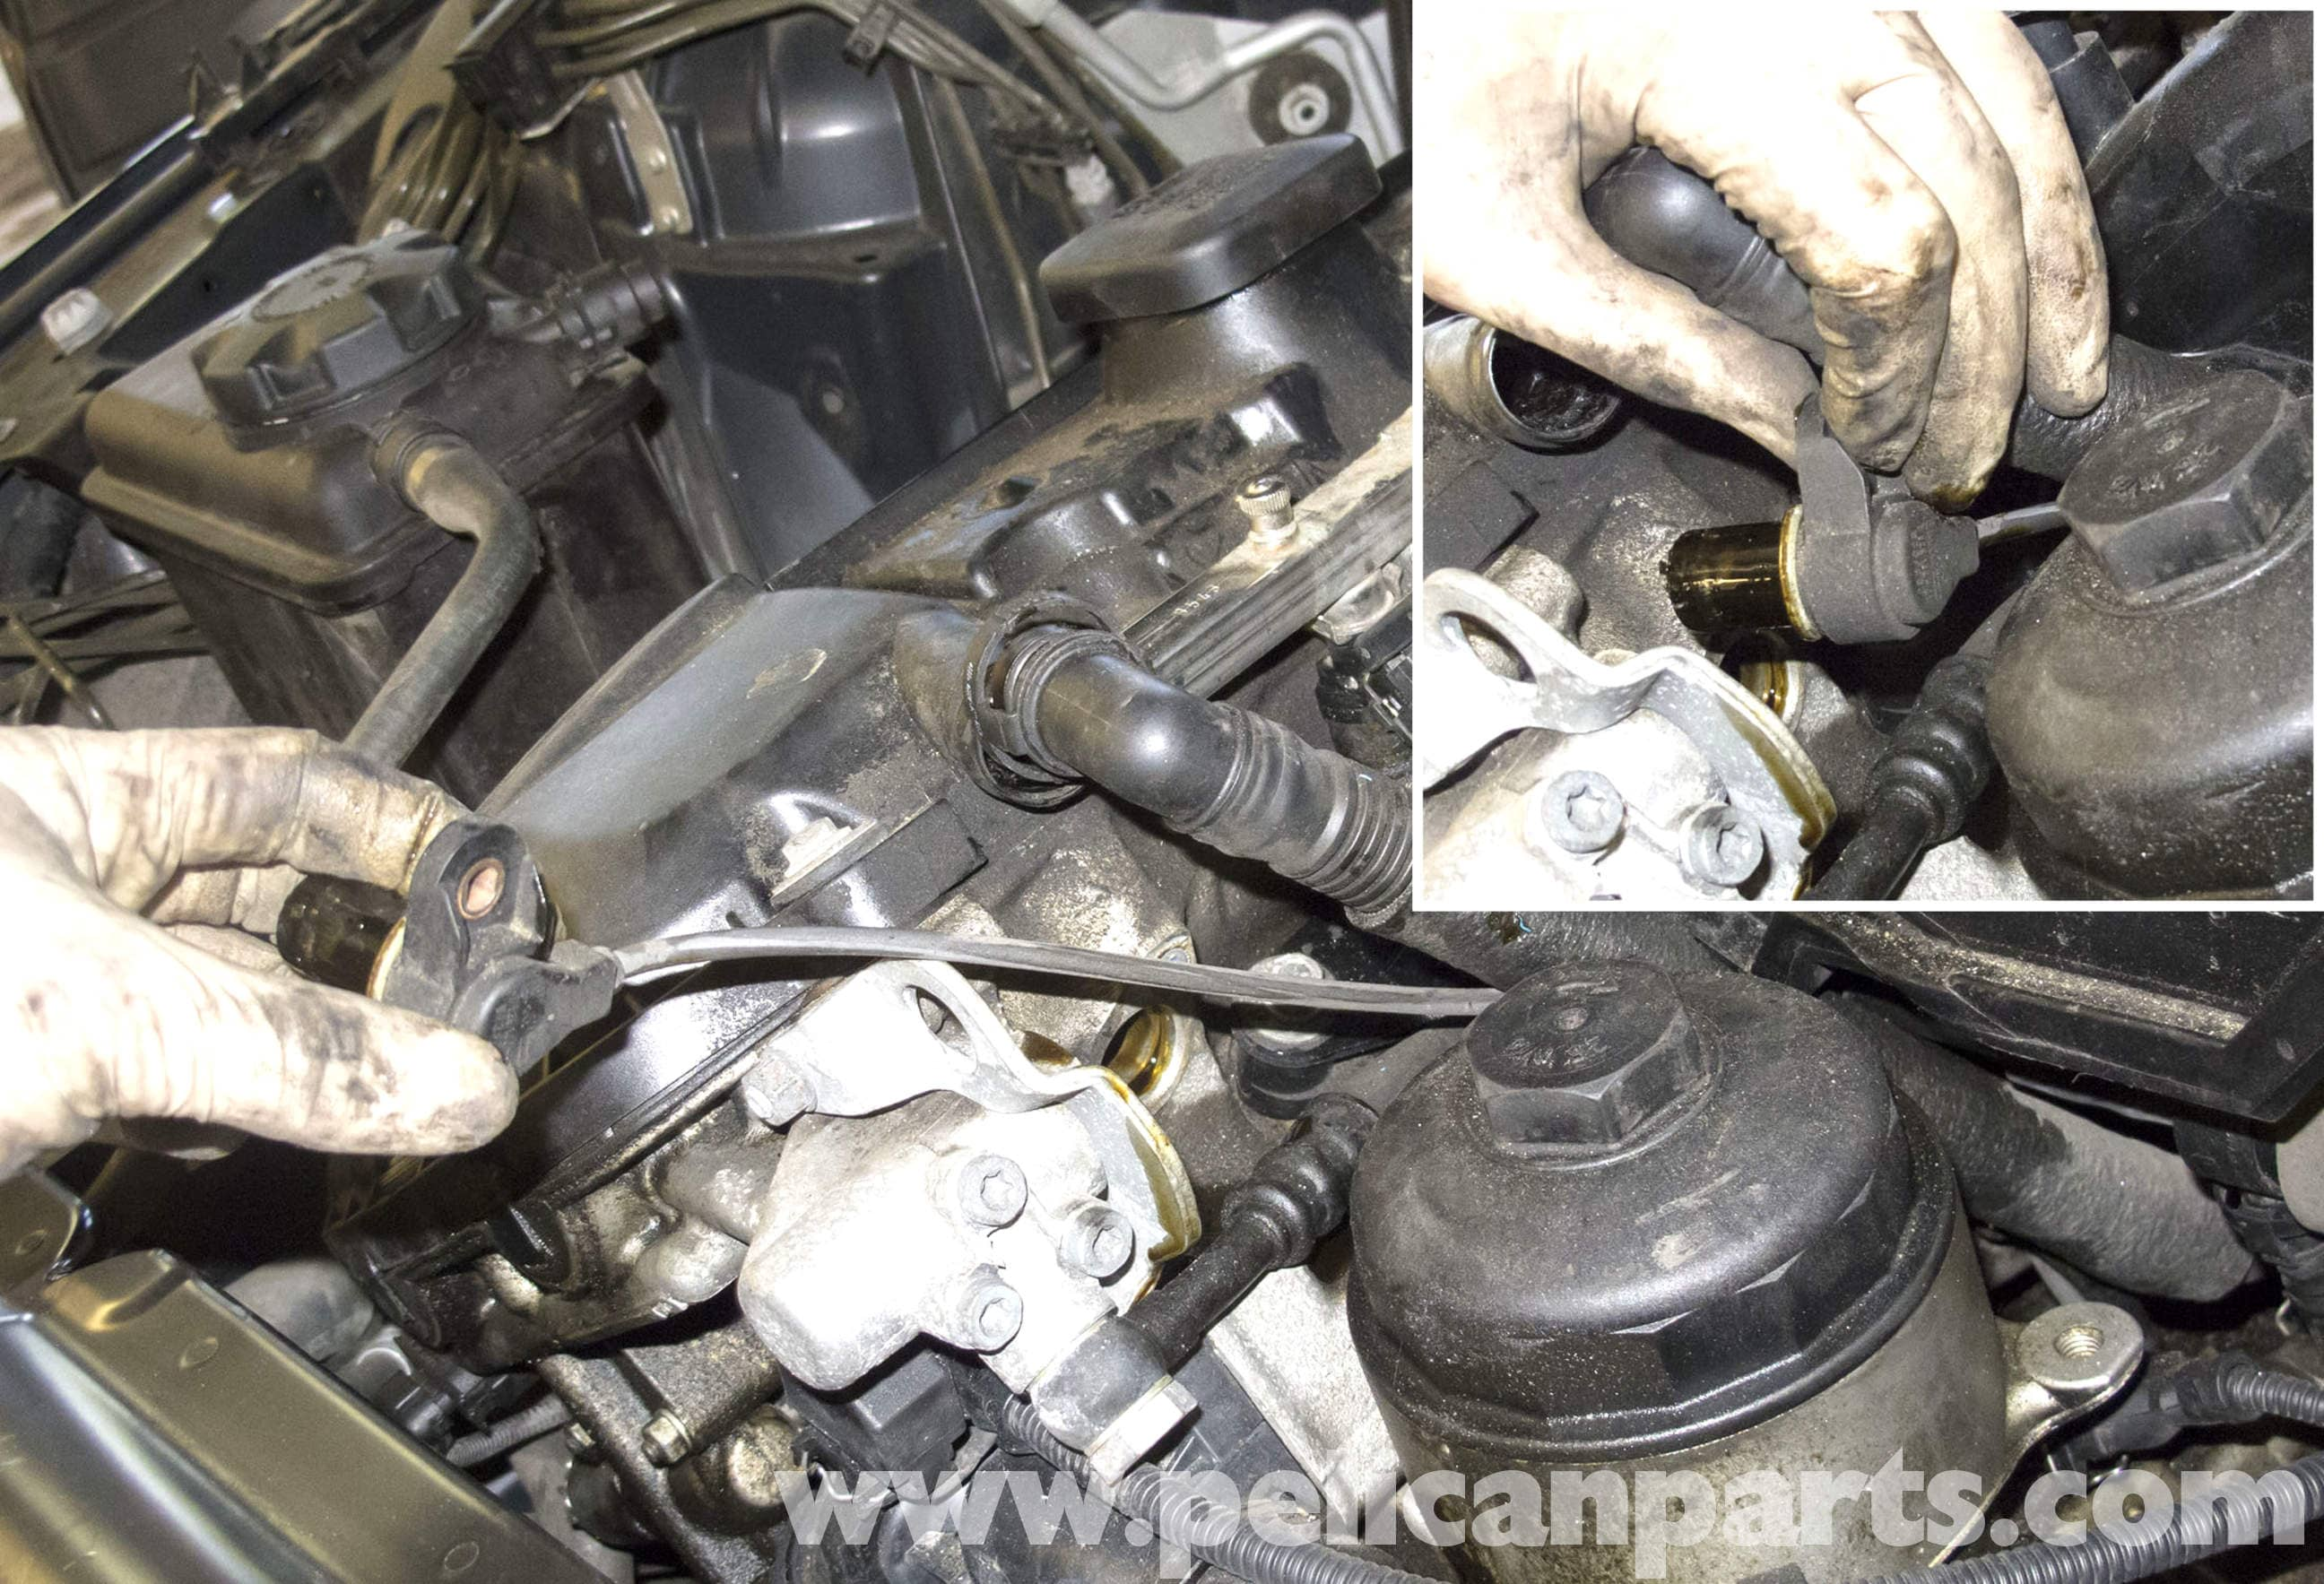 BMW E60 5-Series Camshaft Sensor Replacement (M54 6-Cylinder) - Pelican Parts Technical Article